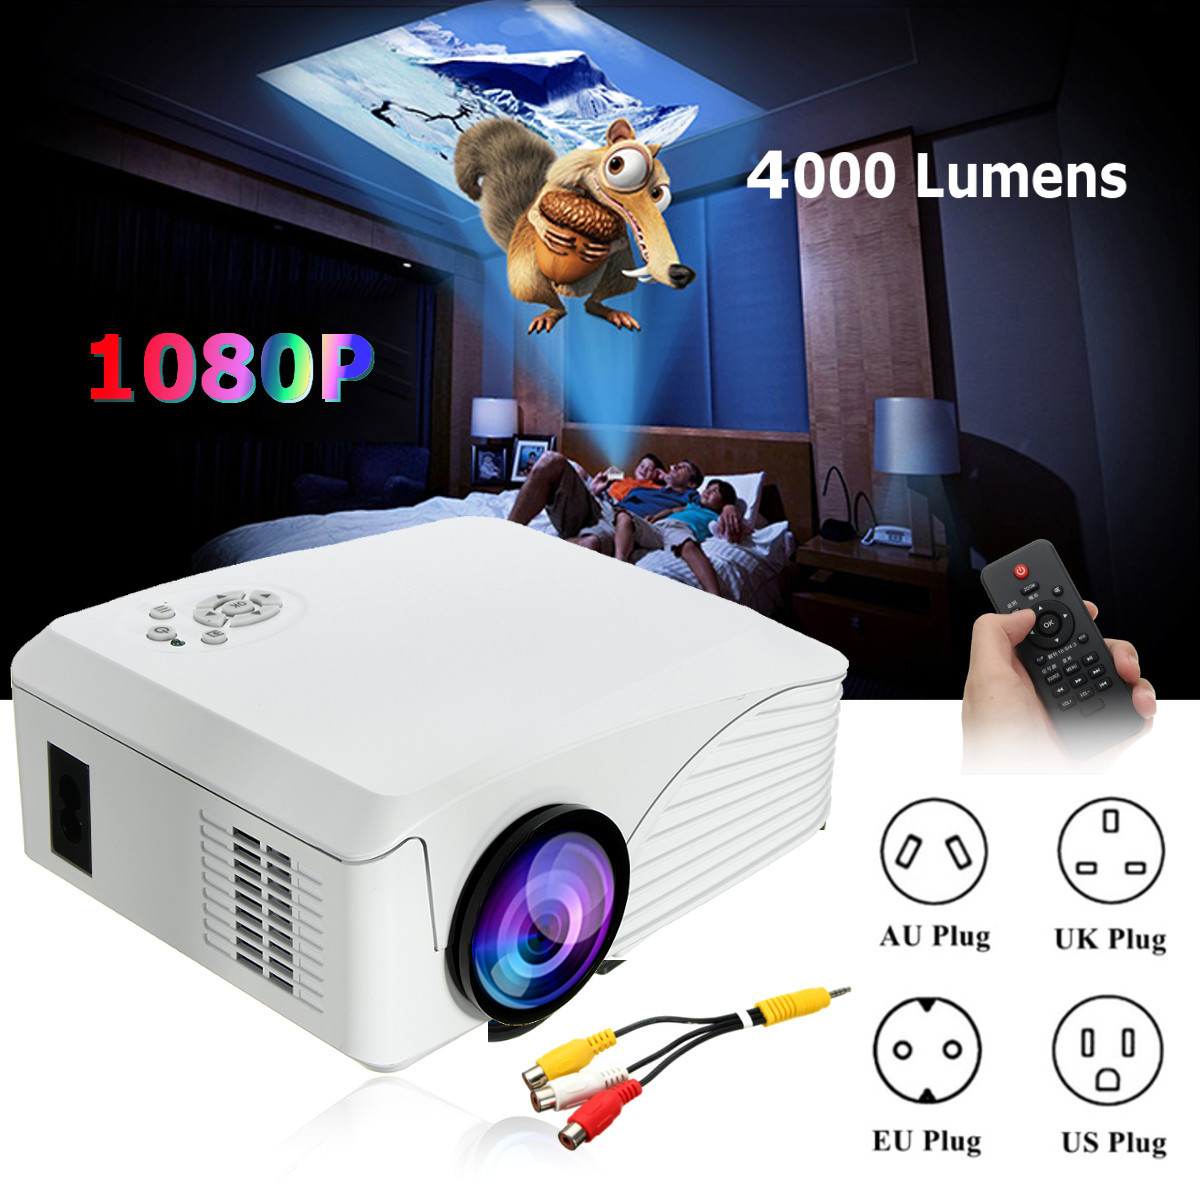 4000 Lumens Portable mini LED Projector Home Theatre System HD Projector with AV Cable